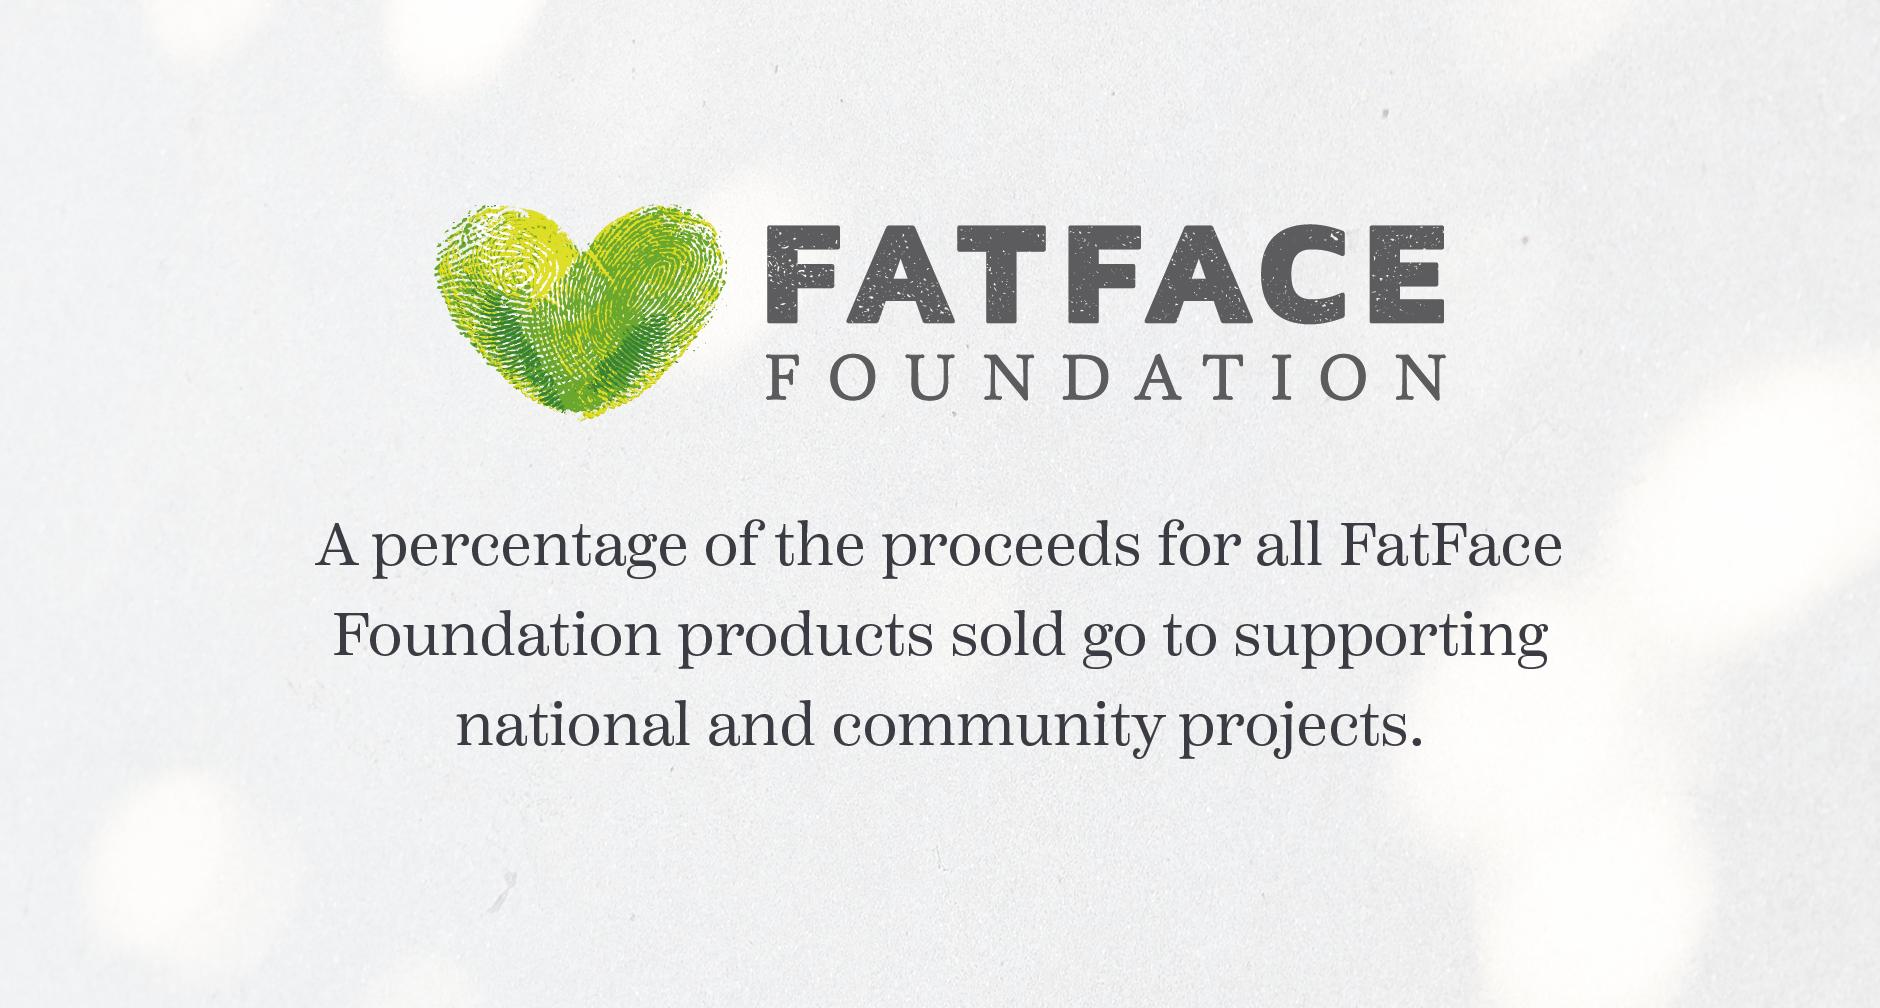 A percentage of the proceeds for all FatFace Foundation products sold go to supporting national and community projects.